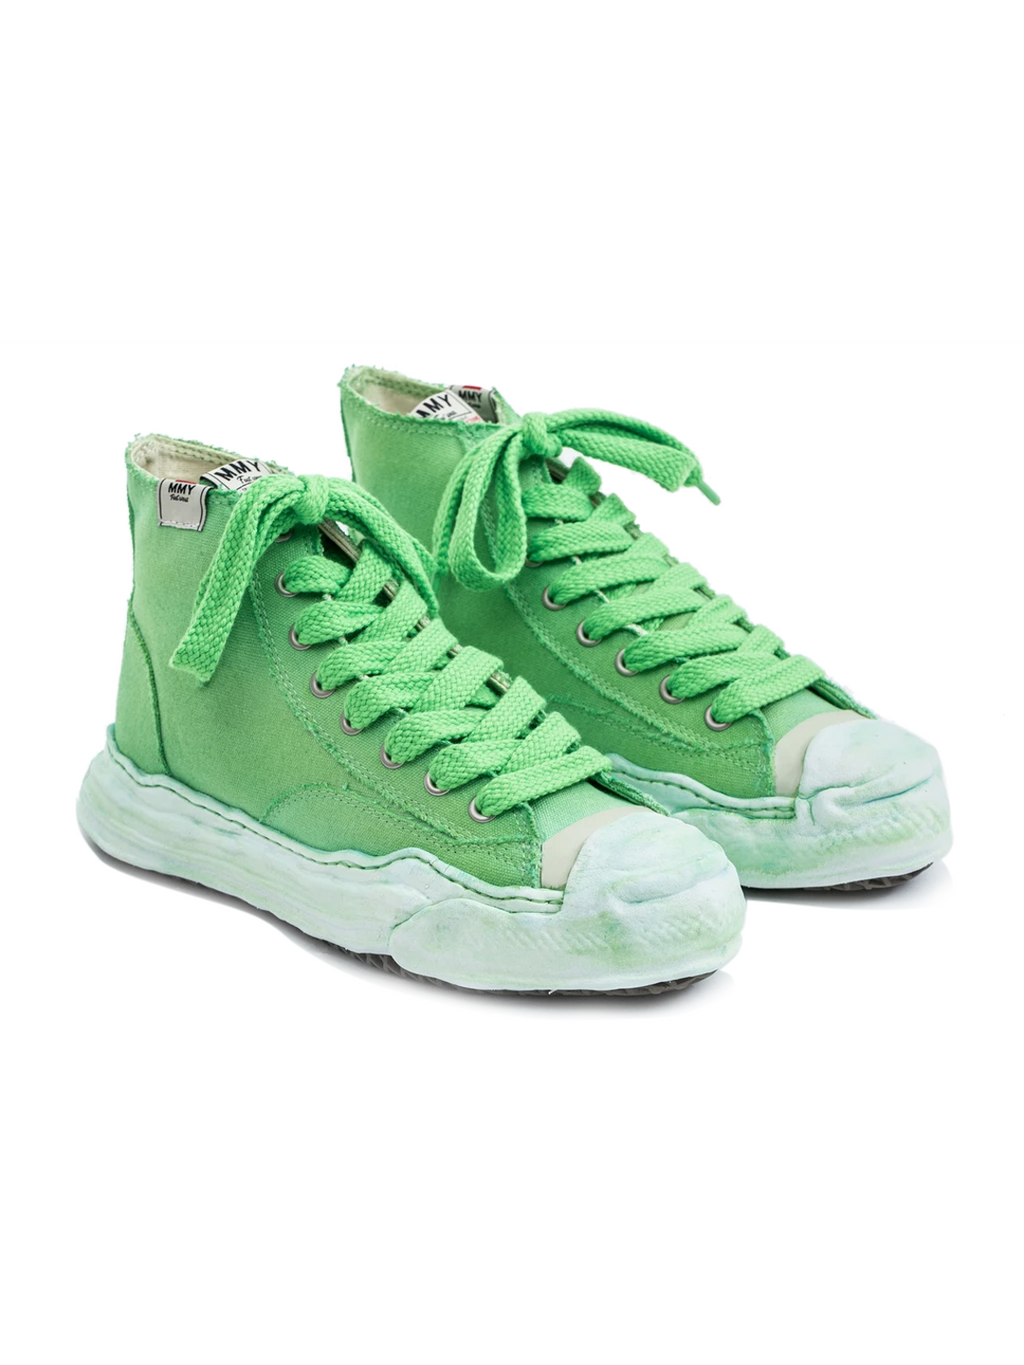 Neon Green Original Sole Overdyed Canvas Sneaker (Hank HI)